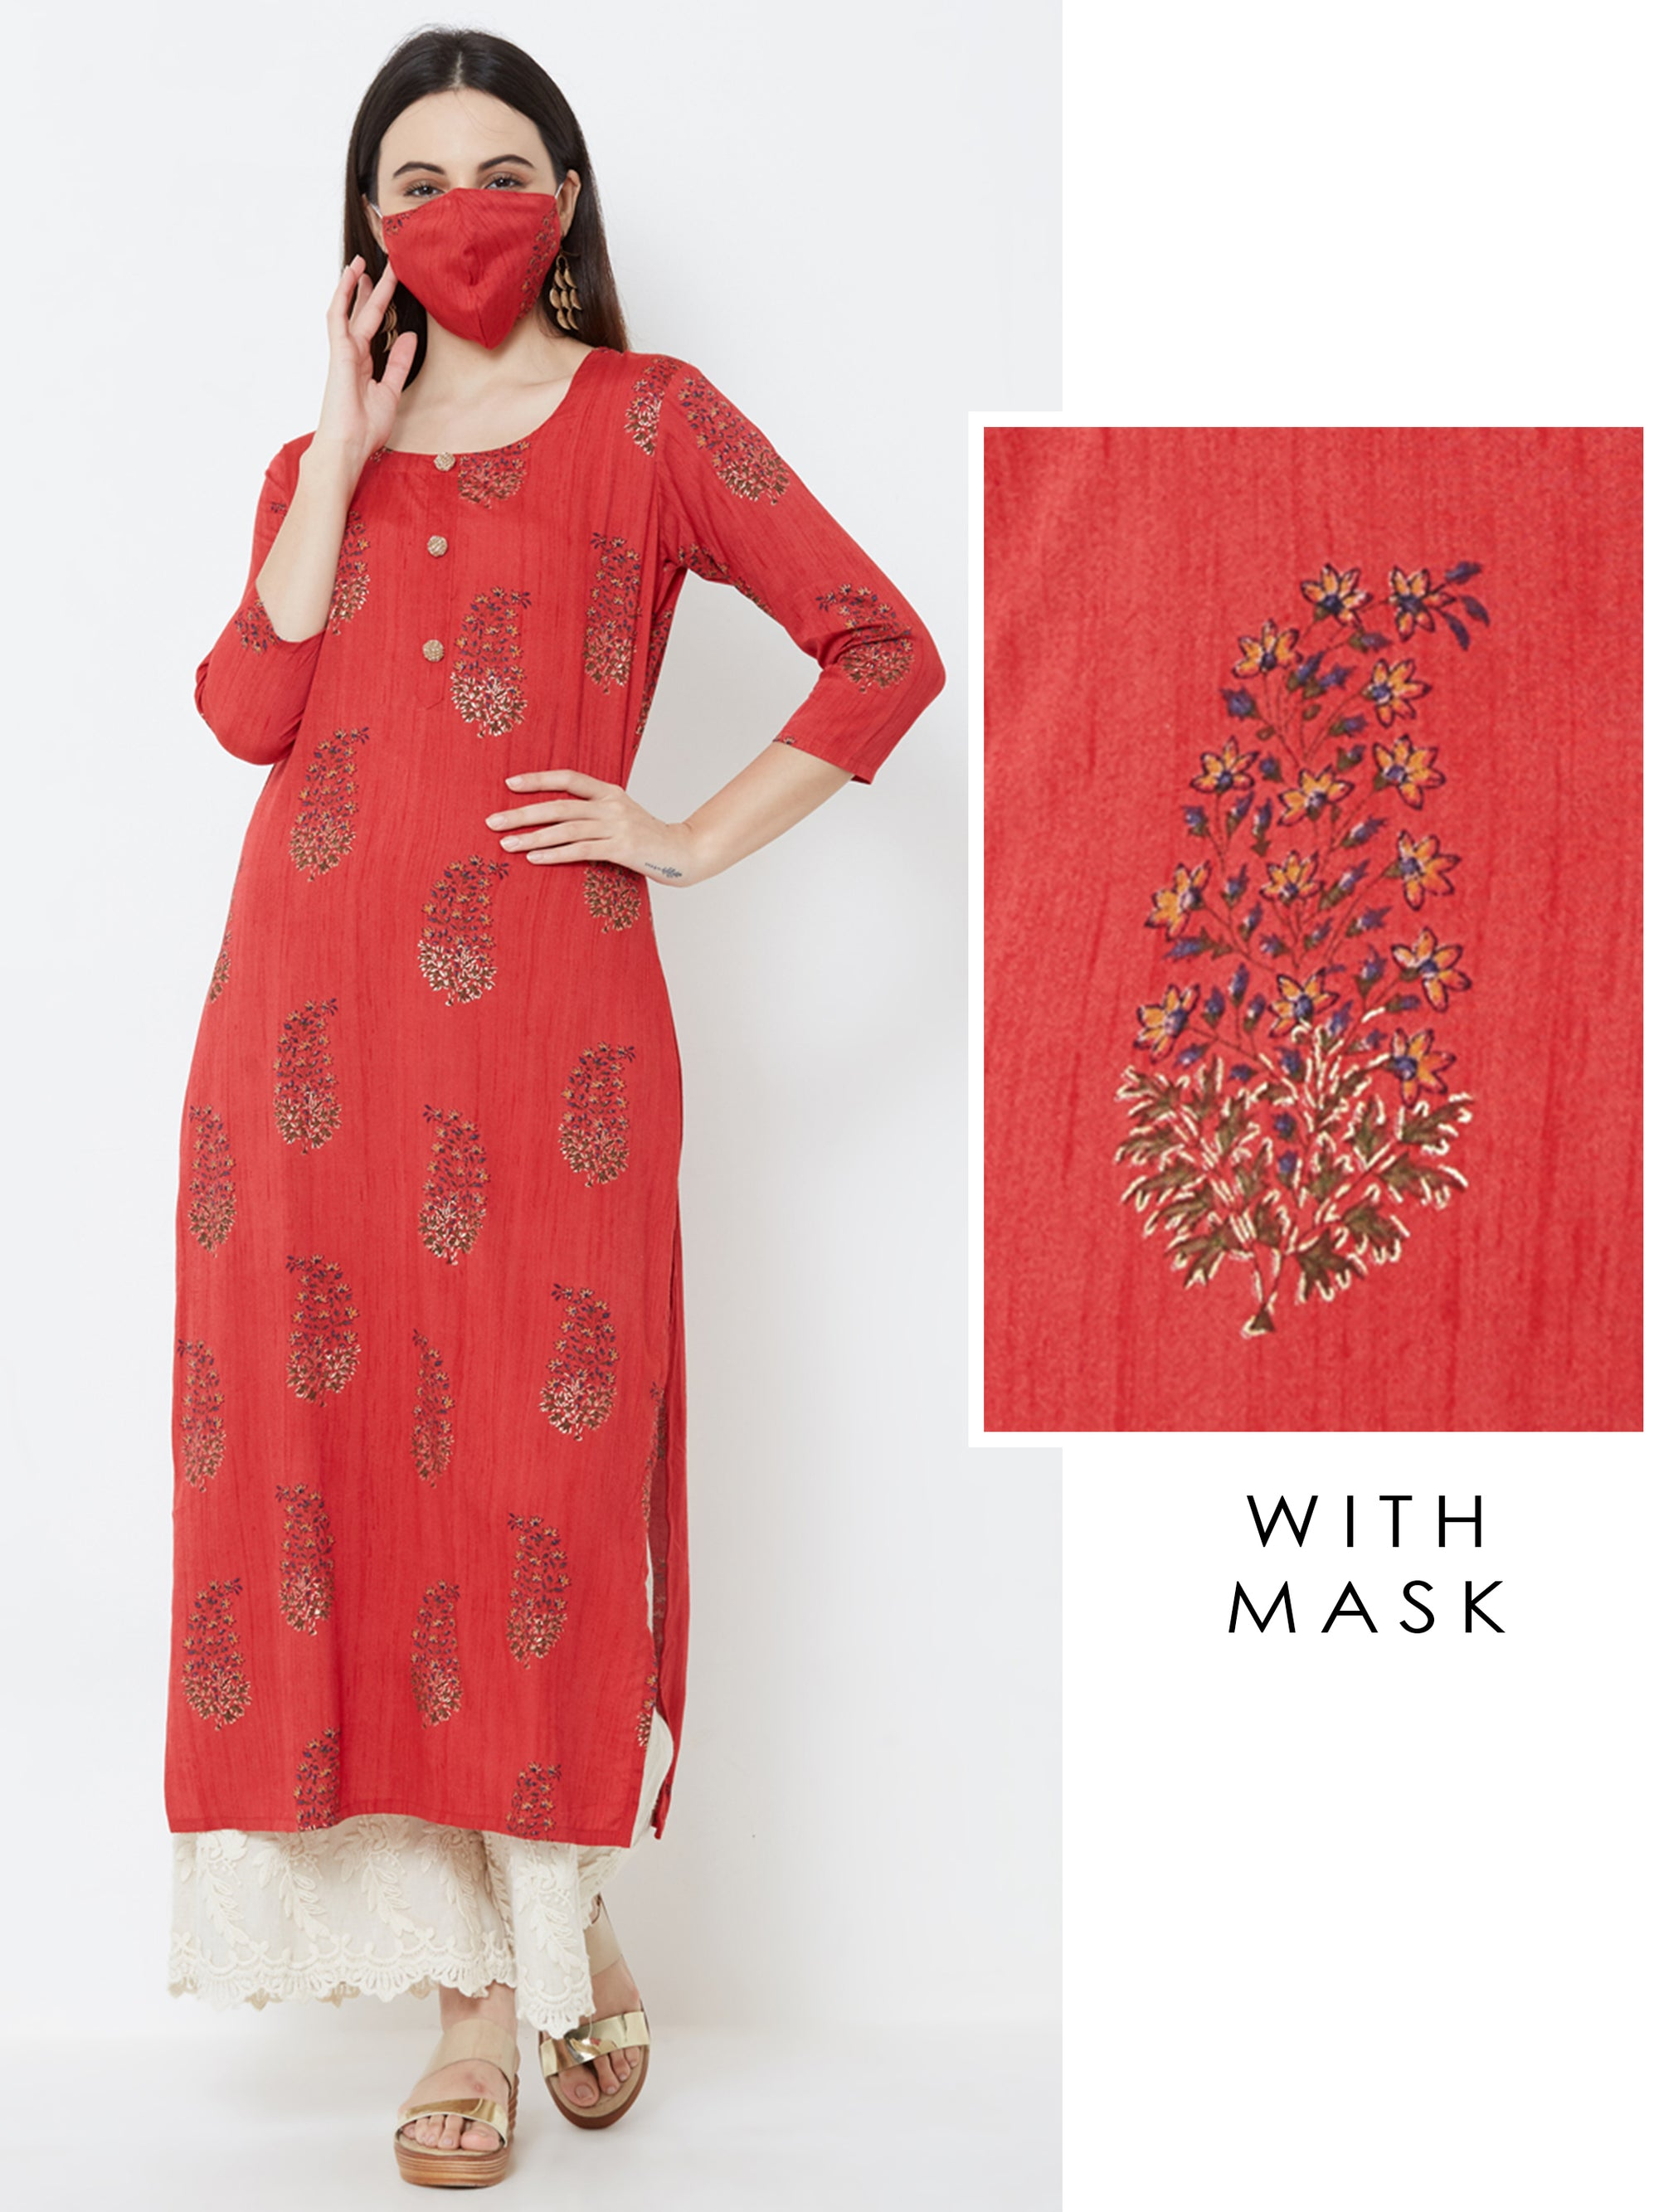 Floral Printed Kurta with Matching Mask – Maroon